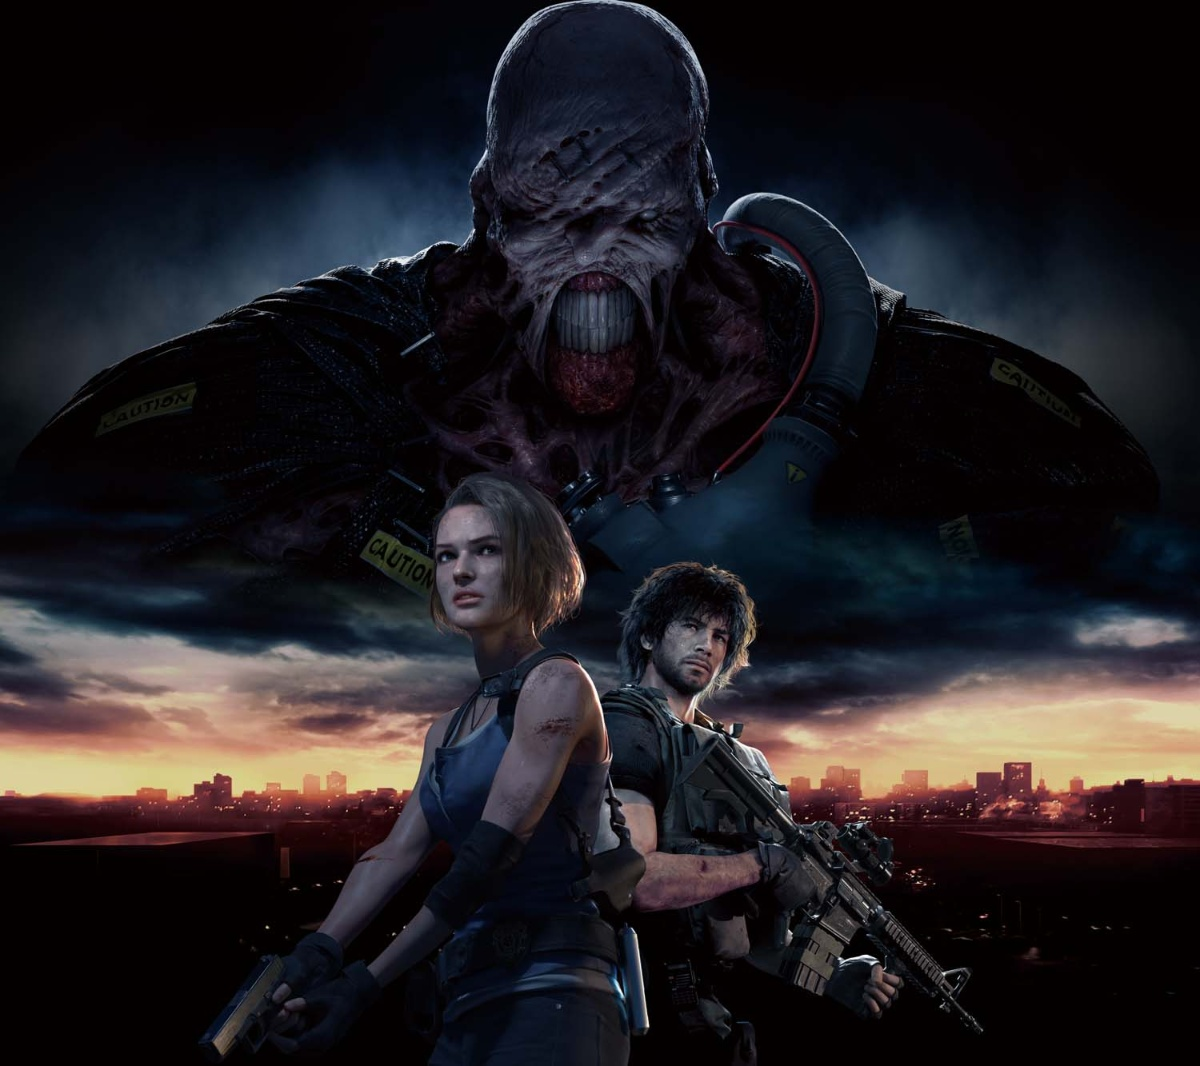 Return To Raccoon City In Trailer For Reimagined Resident